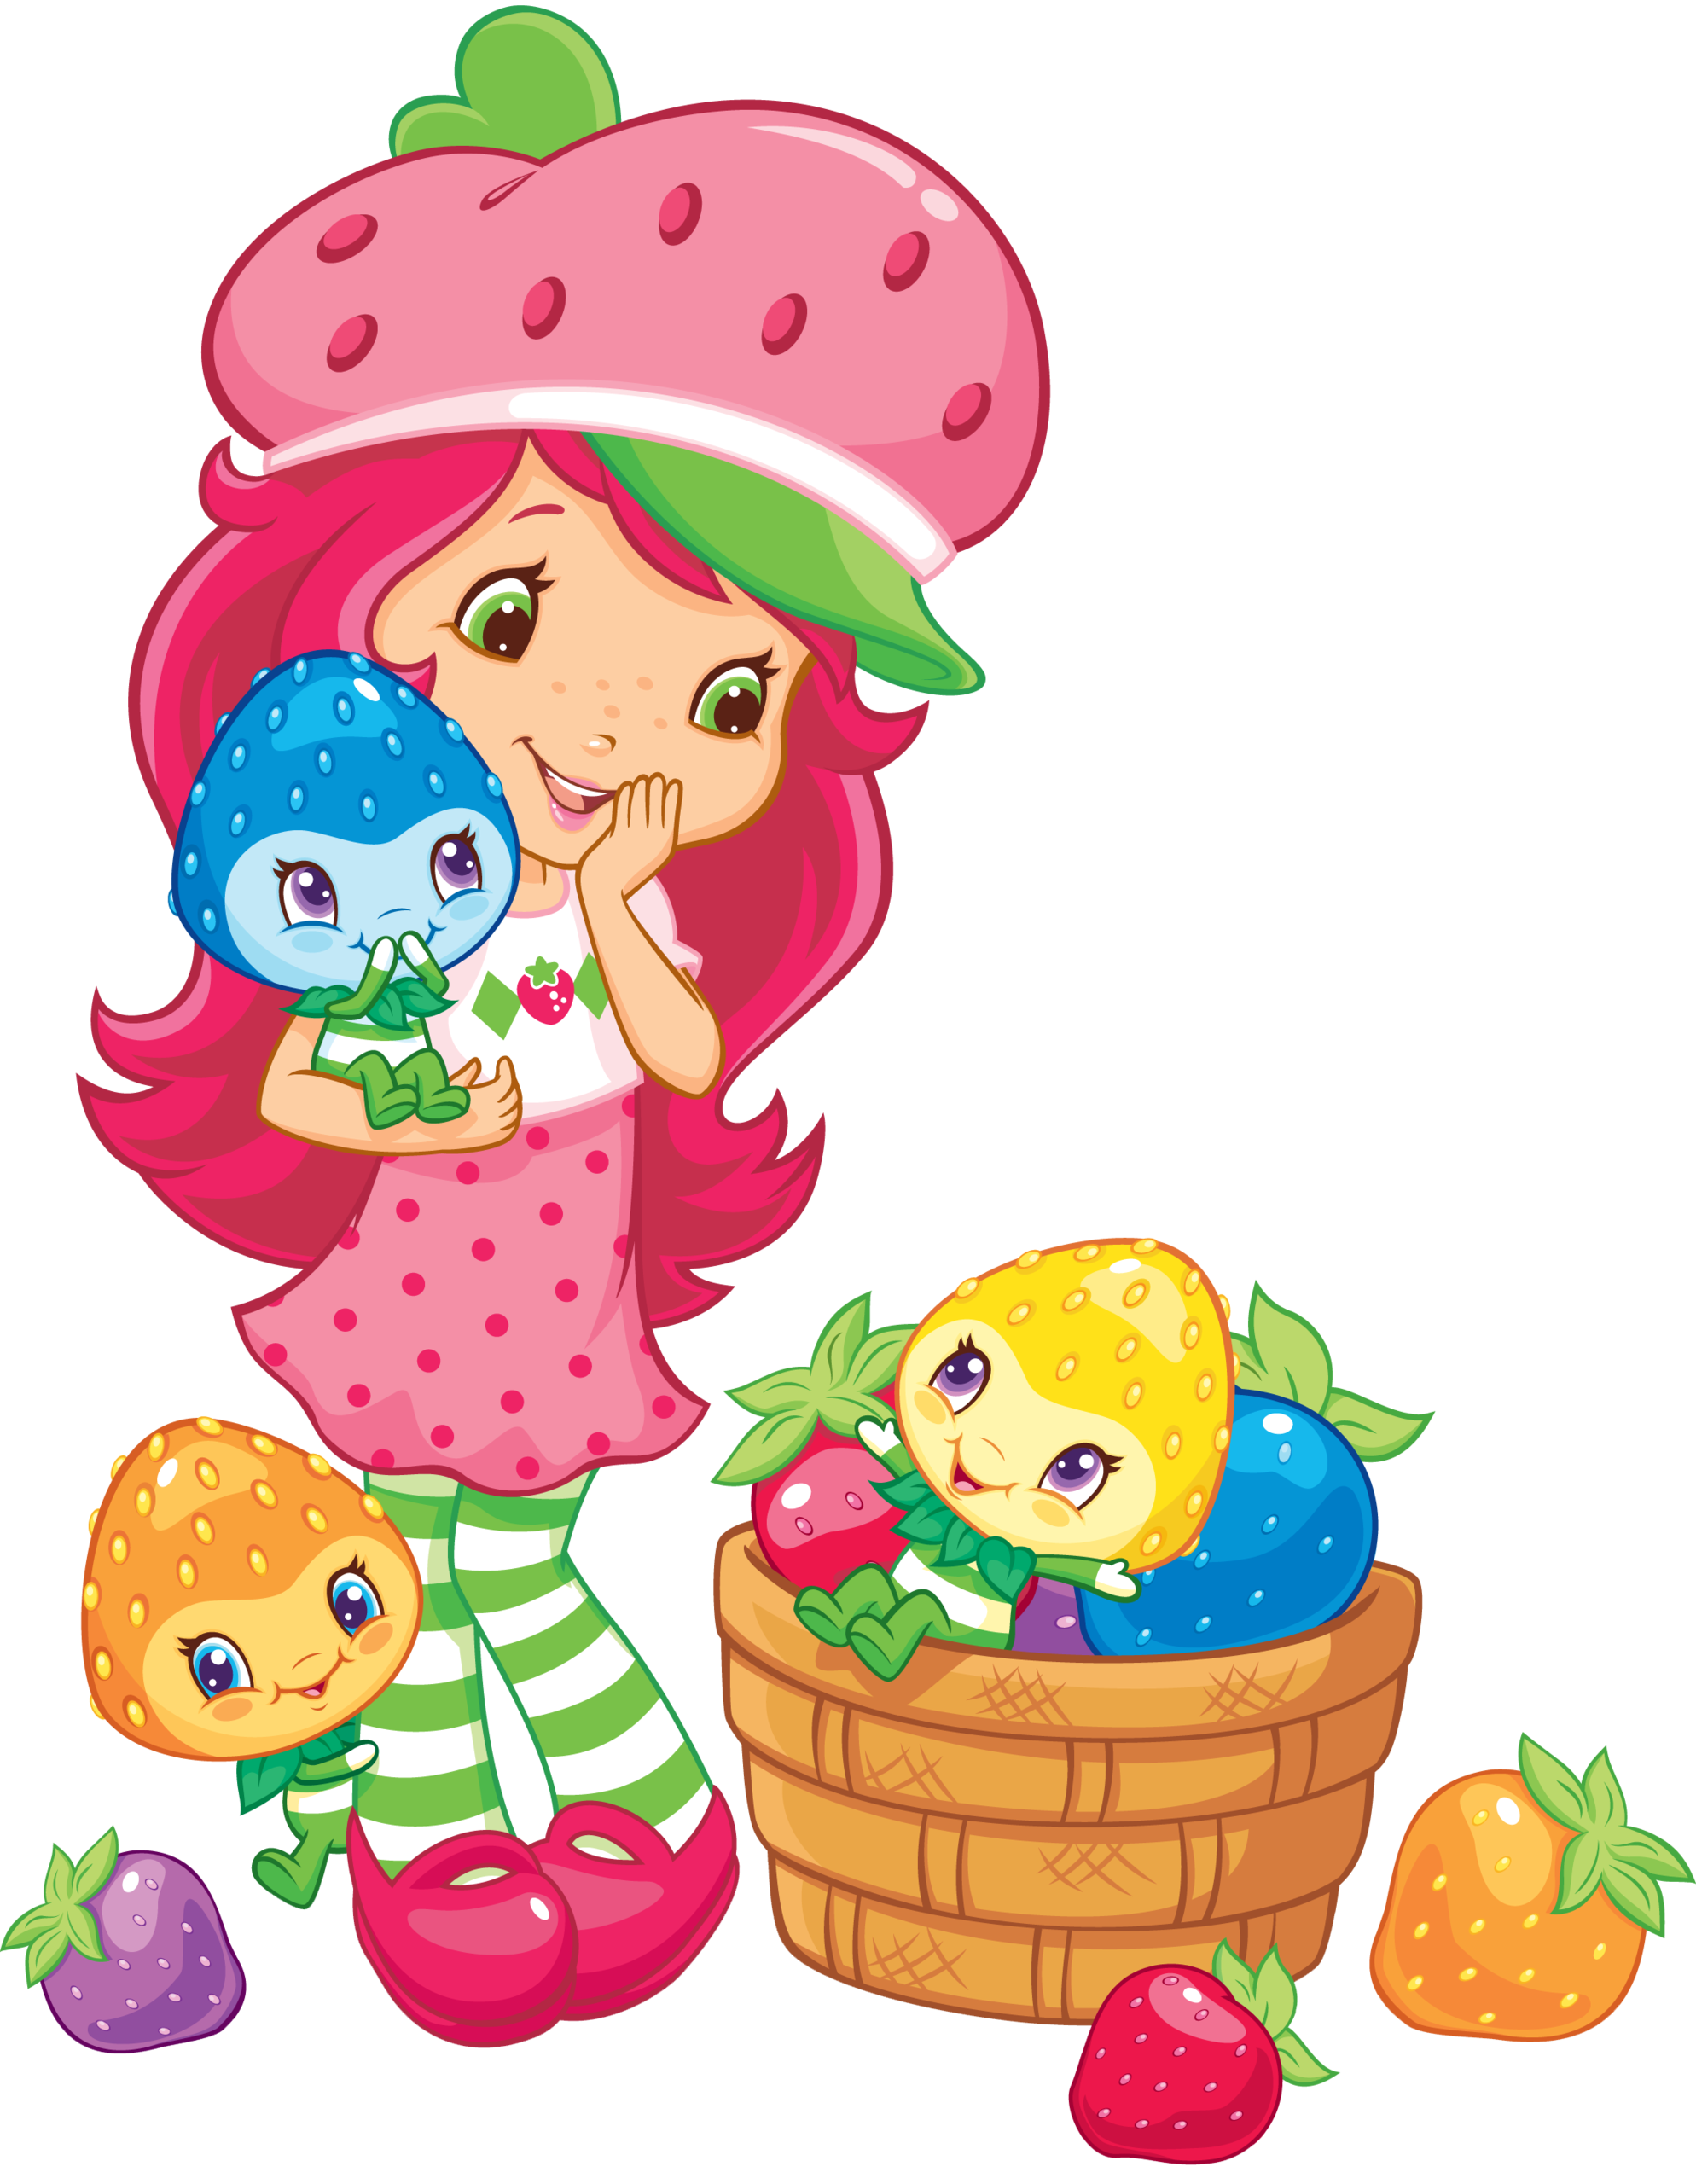 Strawberry shortcake and friends clipart clipart royalty free library new strawberry   Strawberry Shortcake   Strawberry shortcake ... clipart royalty free library